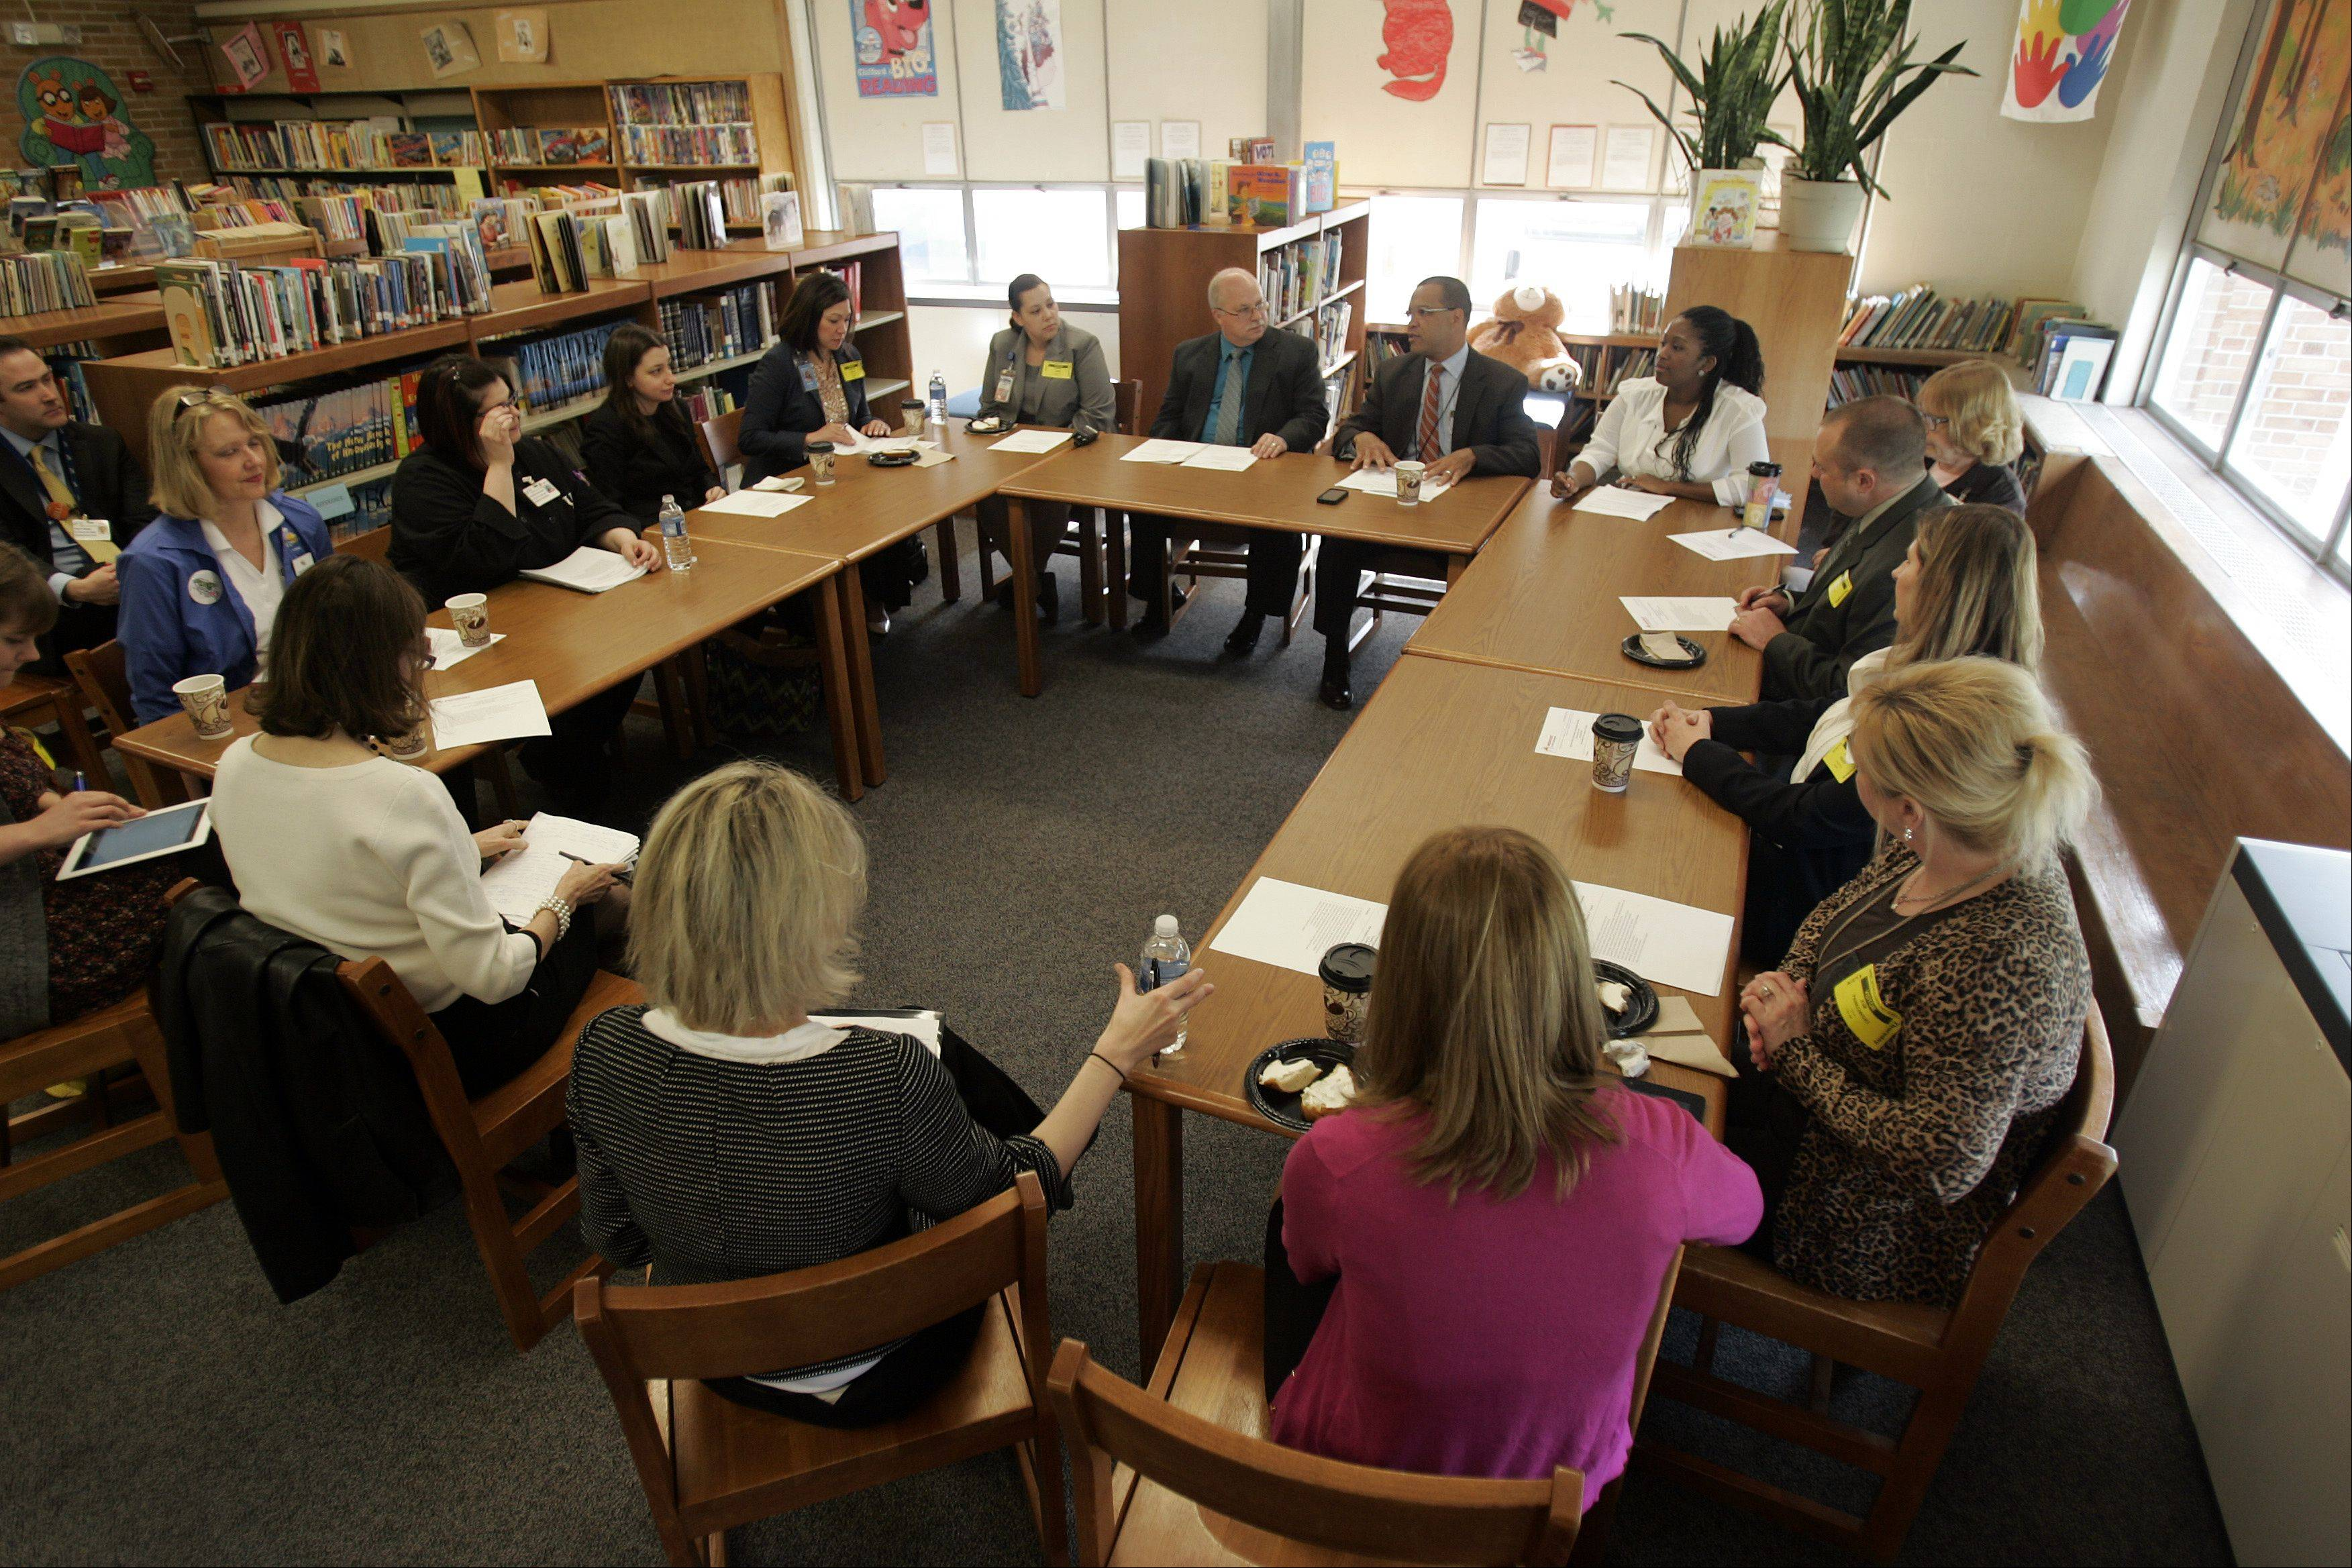 Harriet Gifford Elementary School in Elgin hosted a round-table discussion Thursday to highlight the Breakfast in the Classroom program.